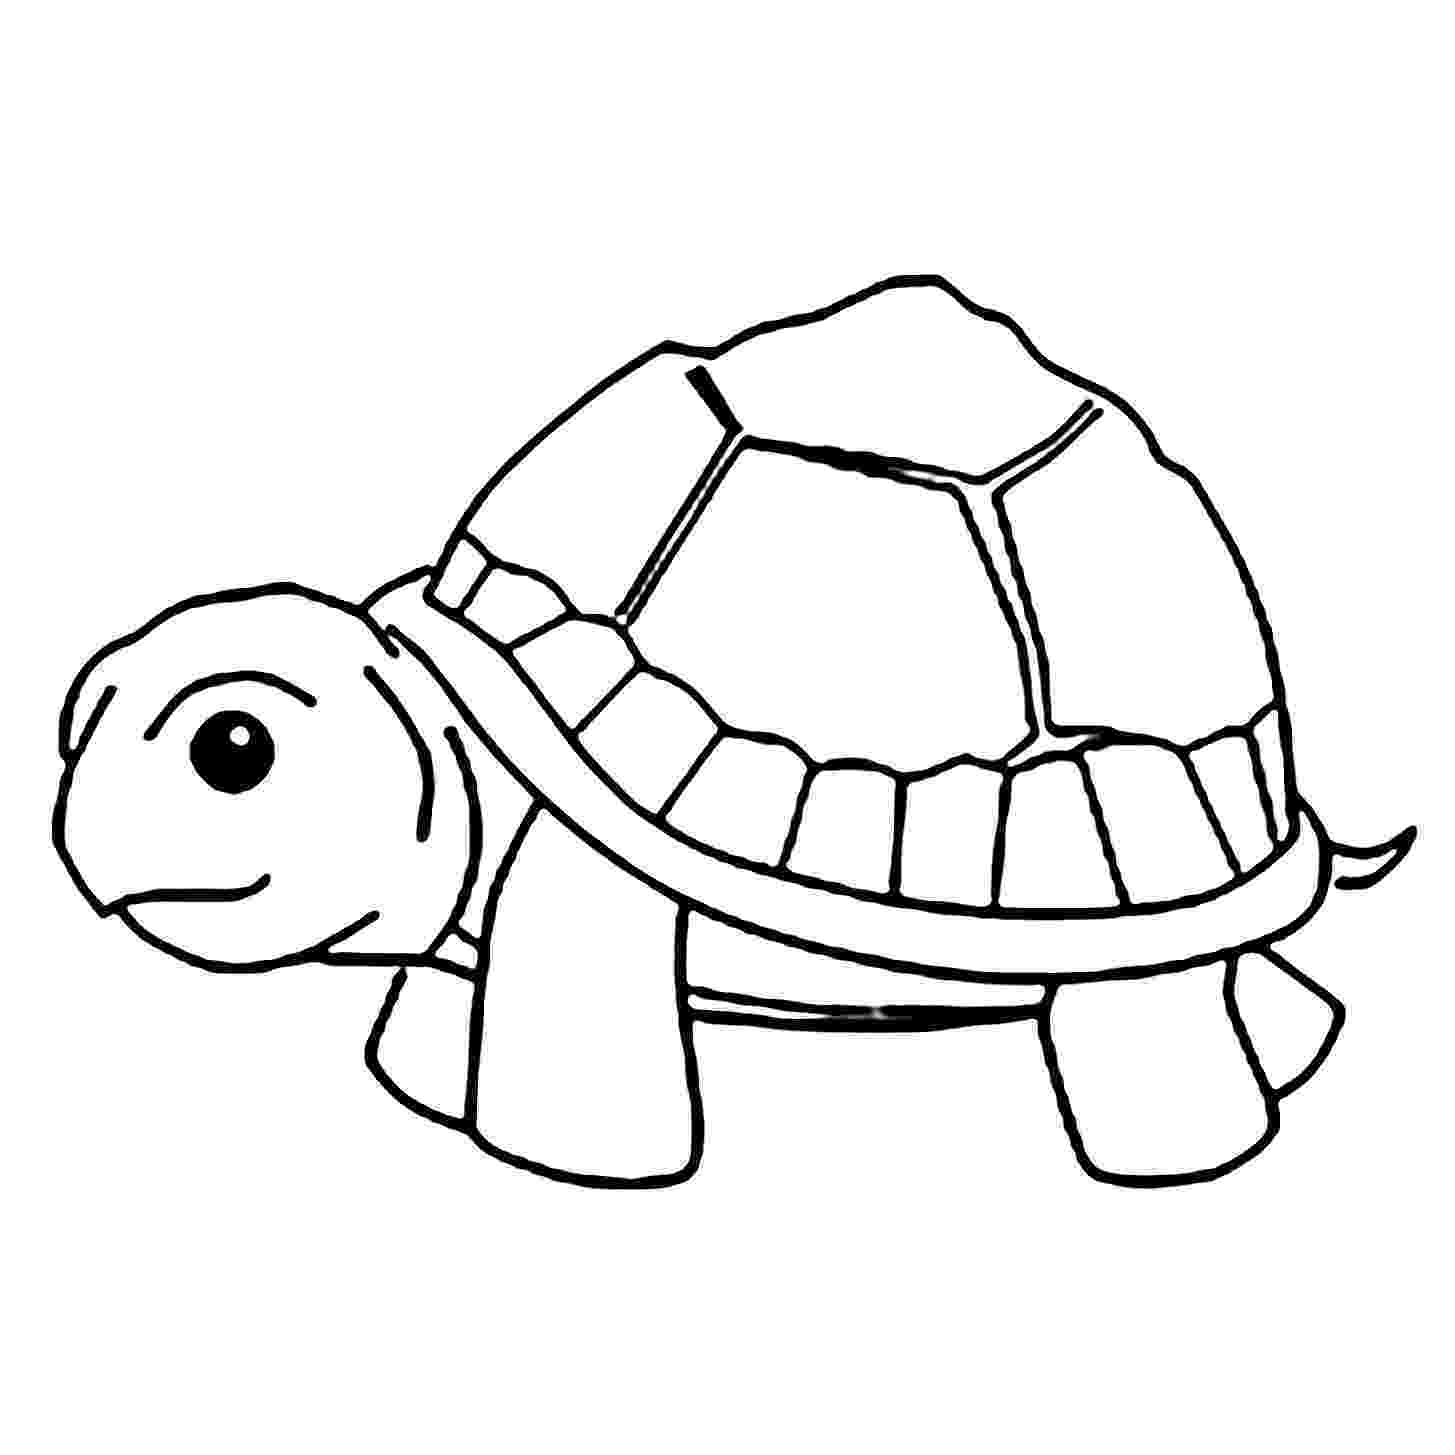 turtle pictures to color coloring pages turtles free printable coloring pages pictures color to turtle